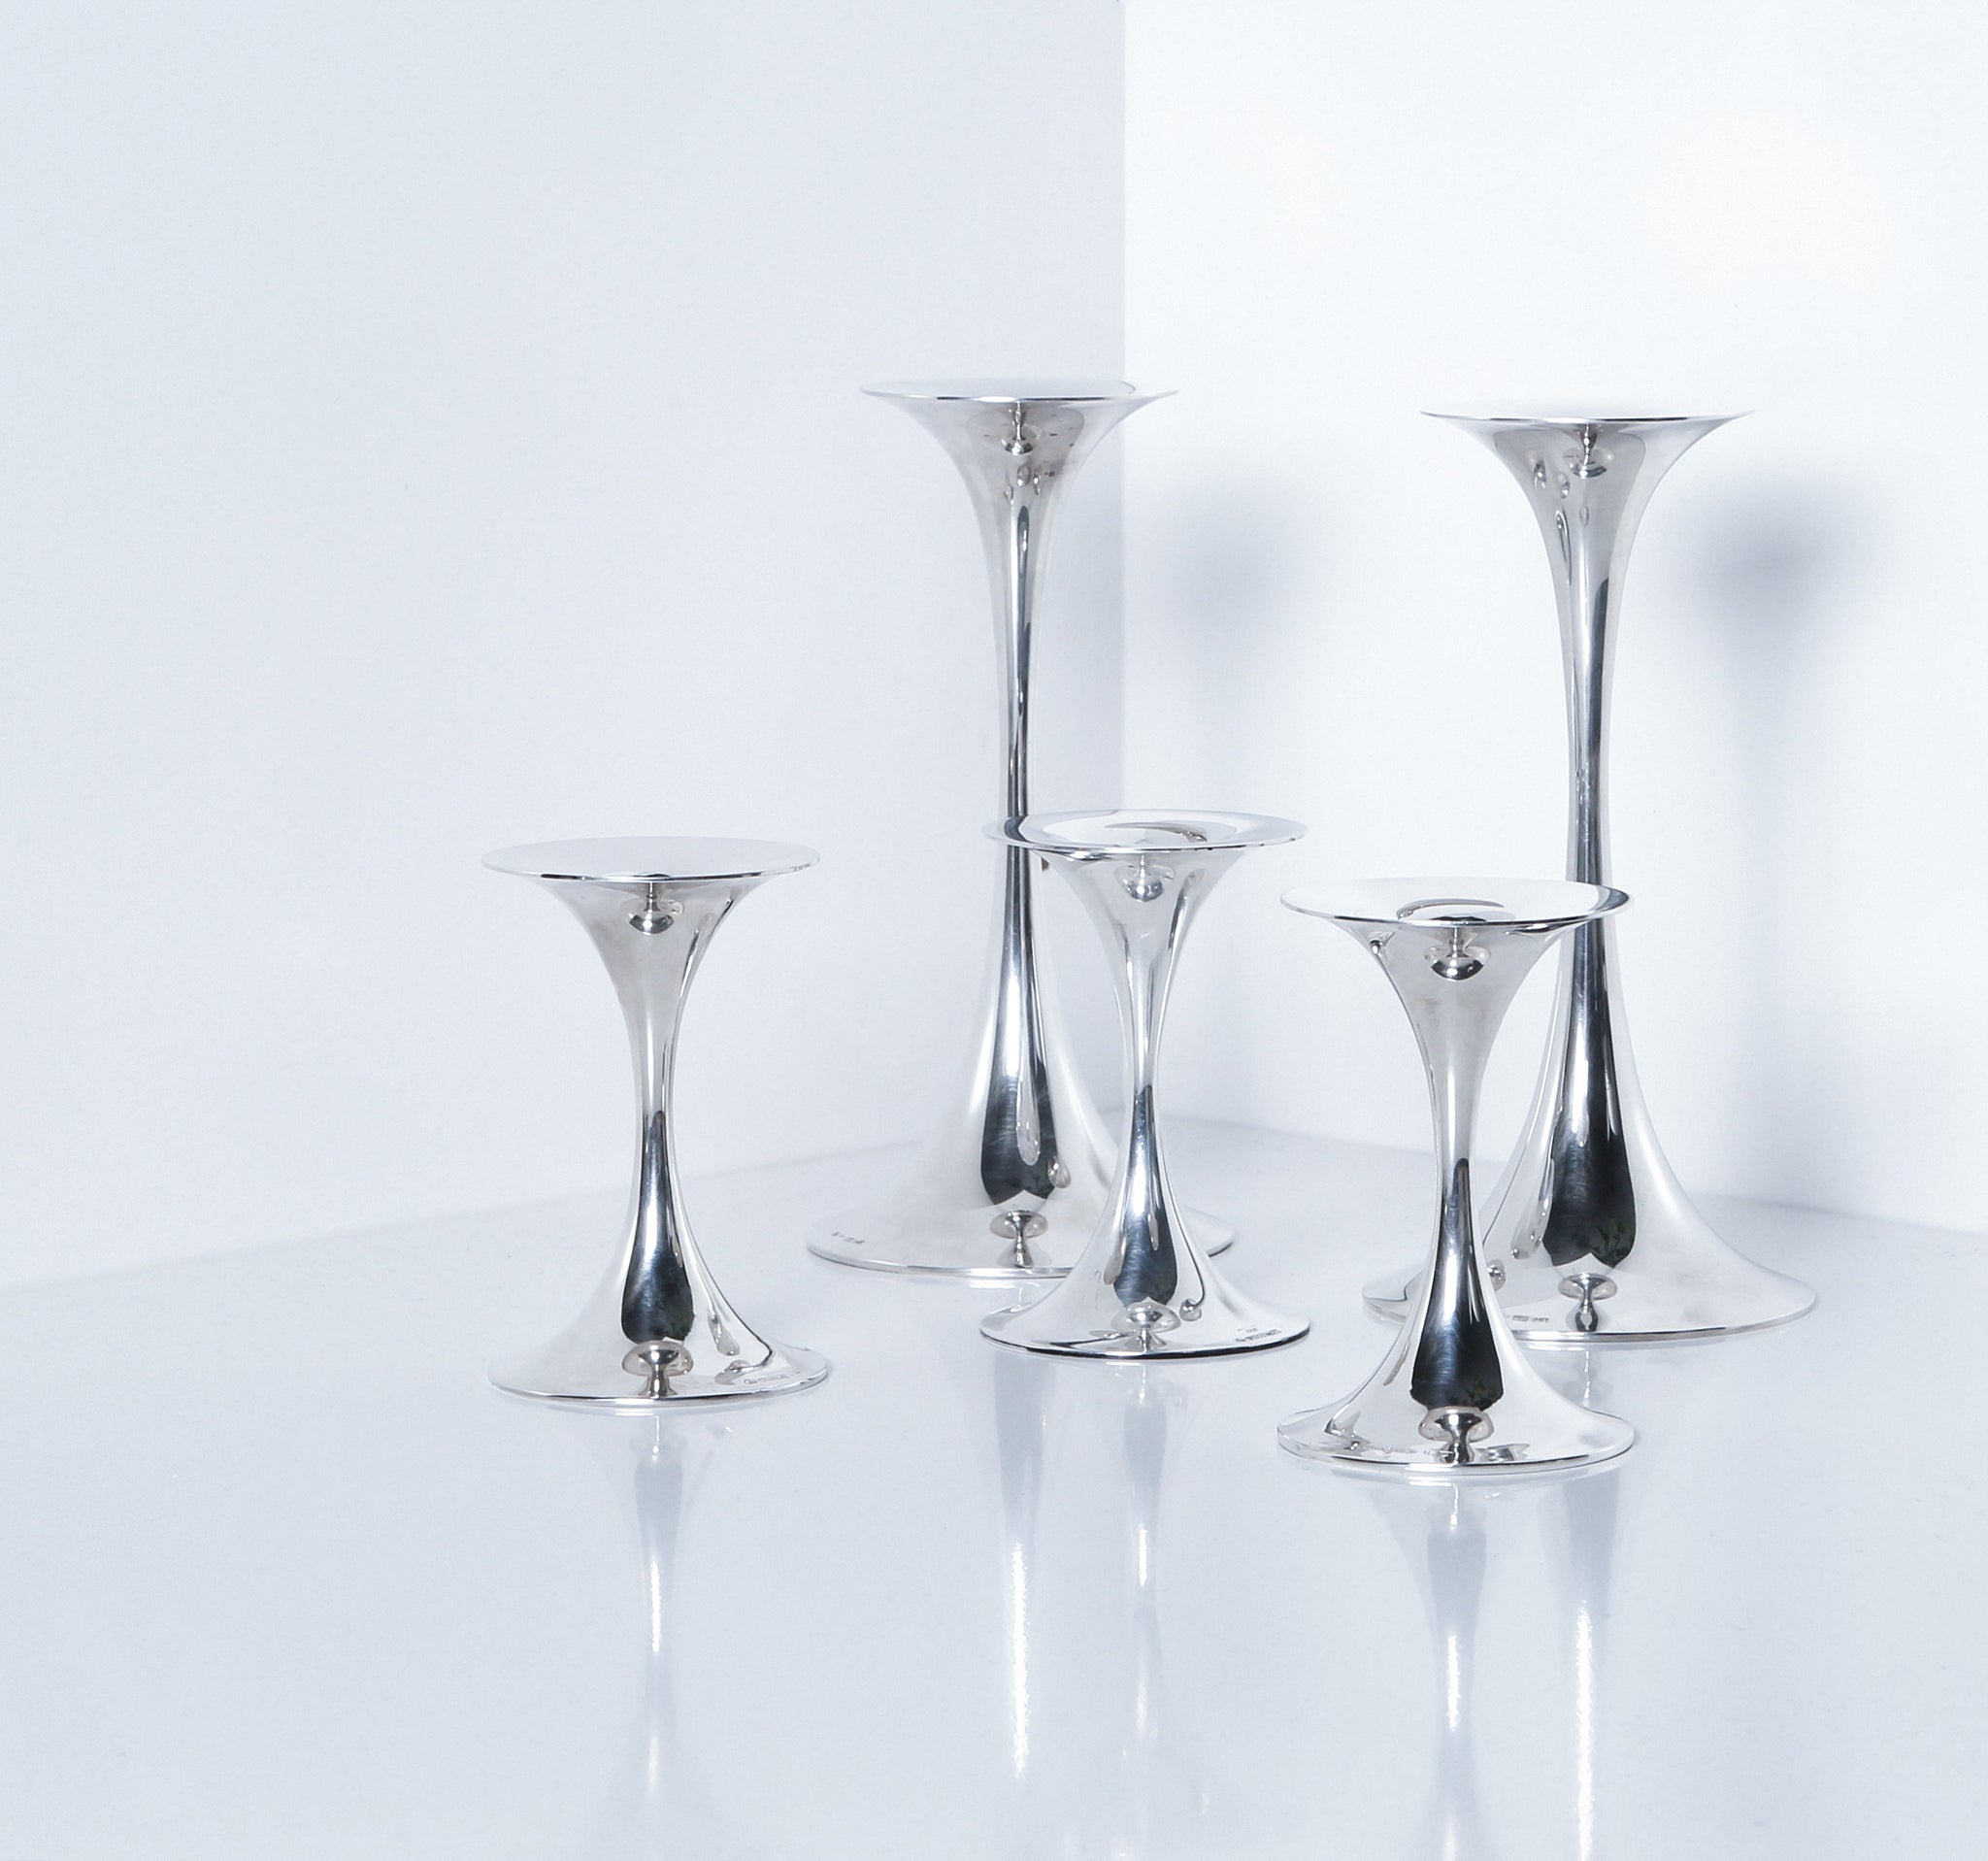 Tapio Wirkkala Sterling Candlesticks, Set of 5, Model TW 284, 1970